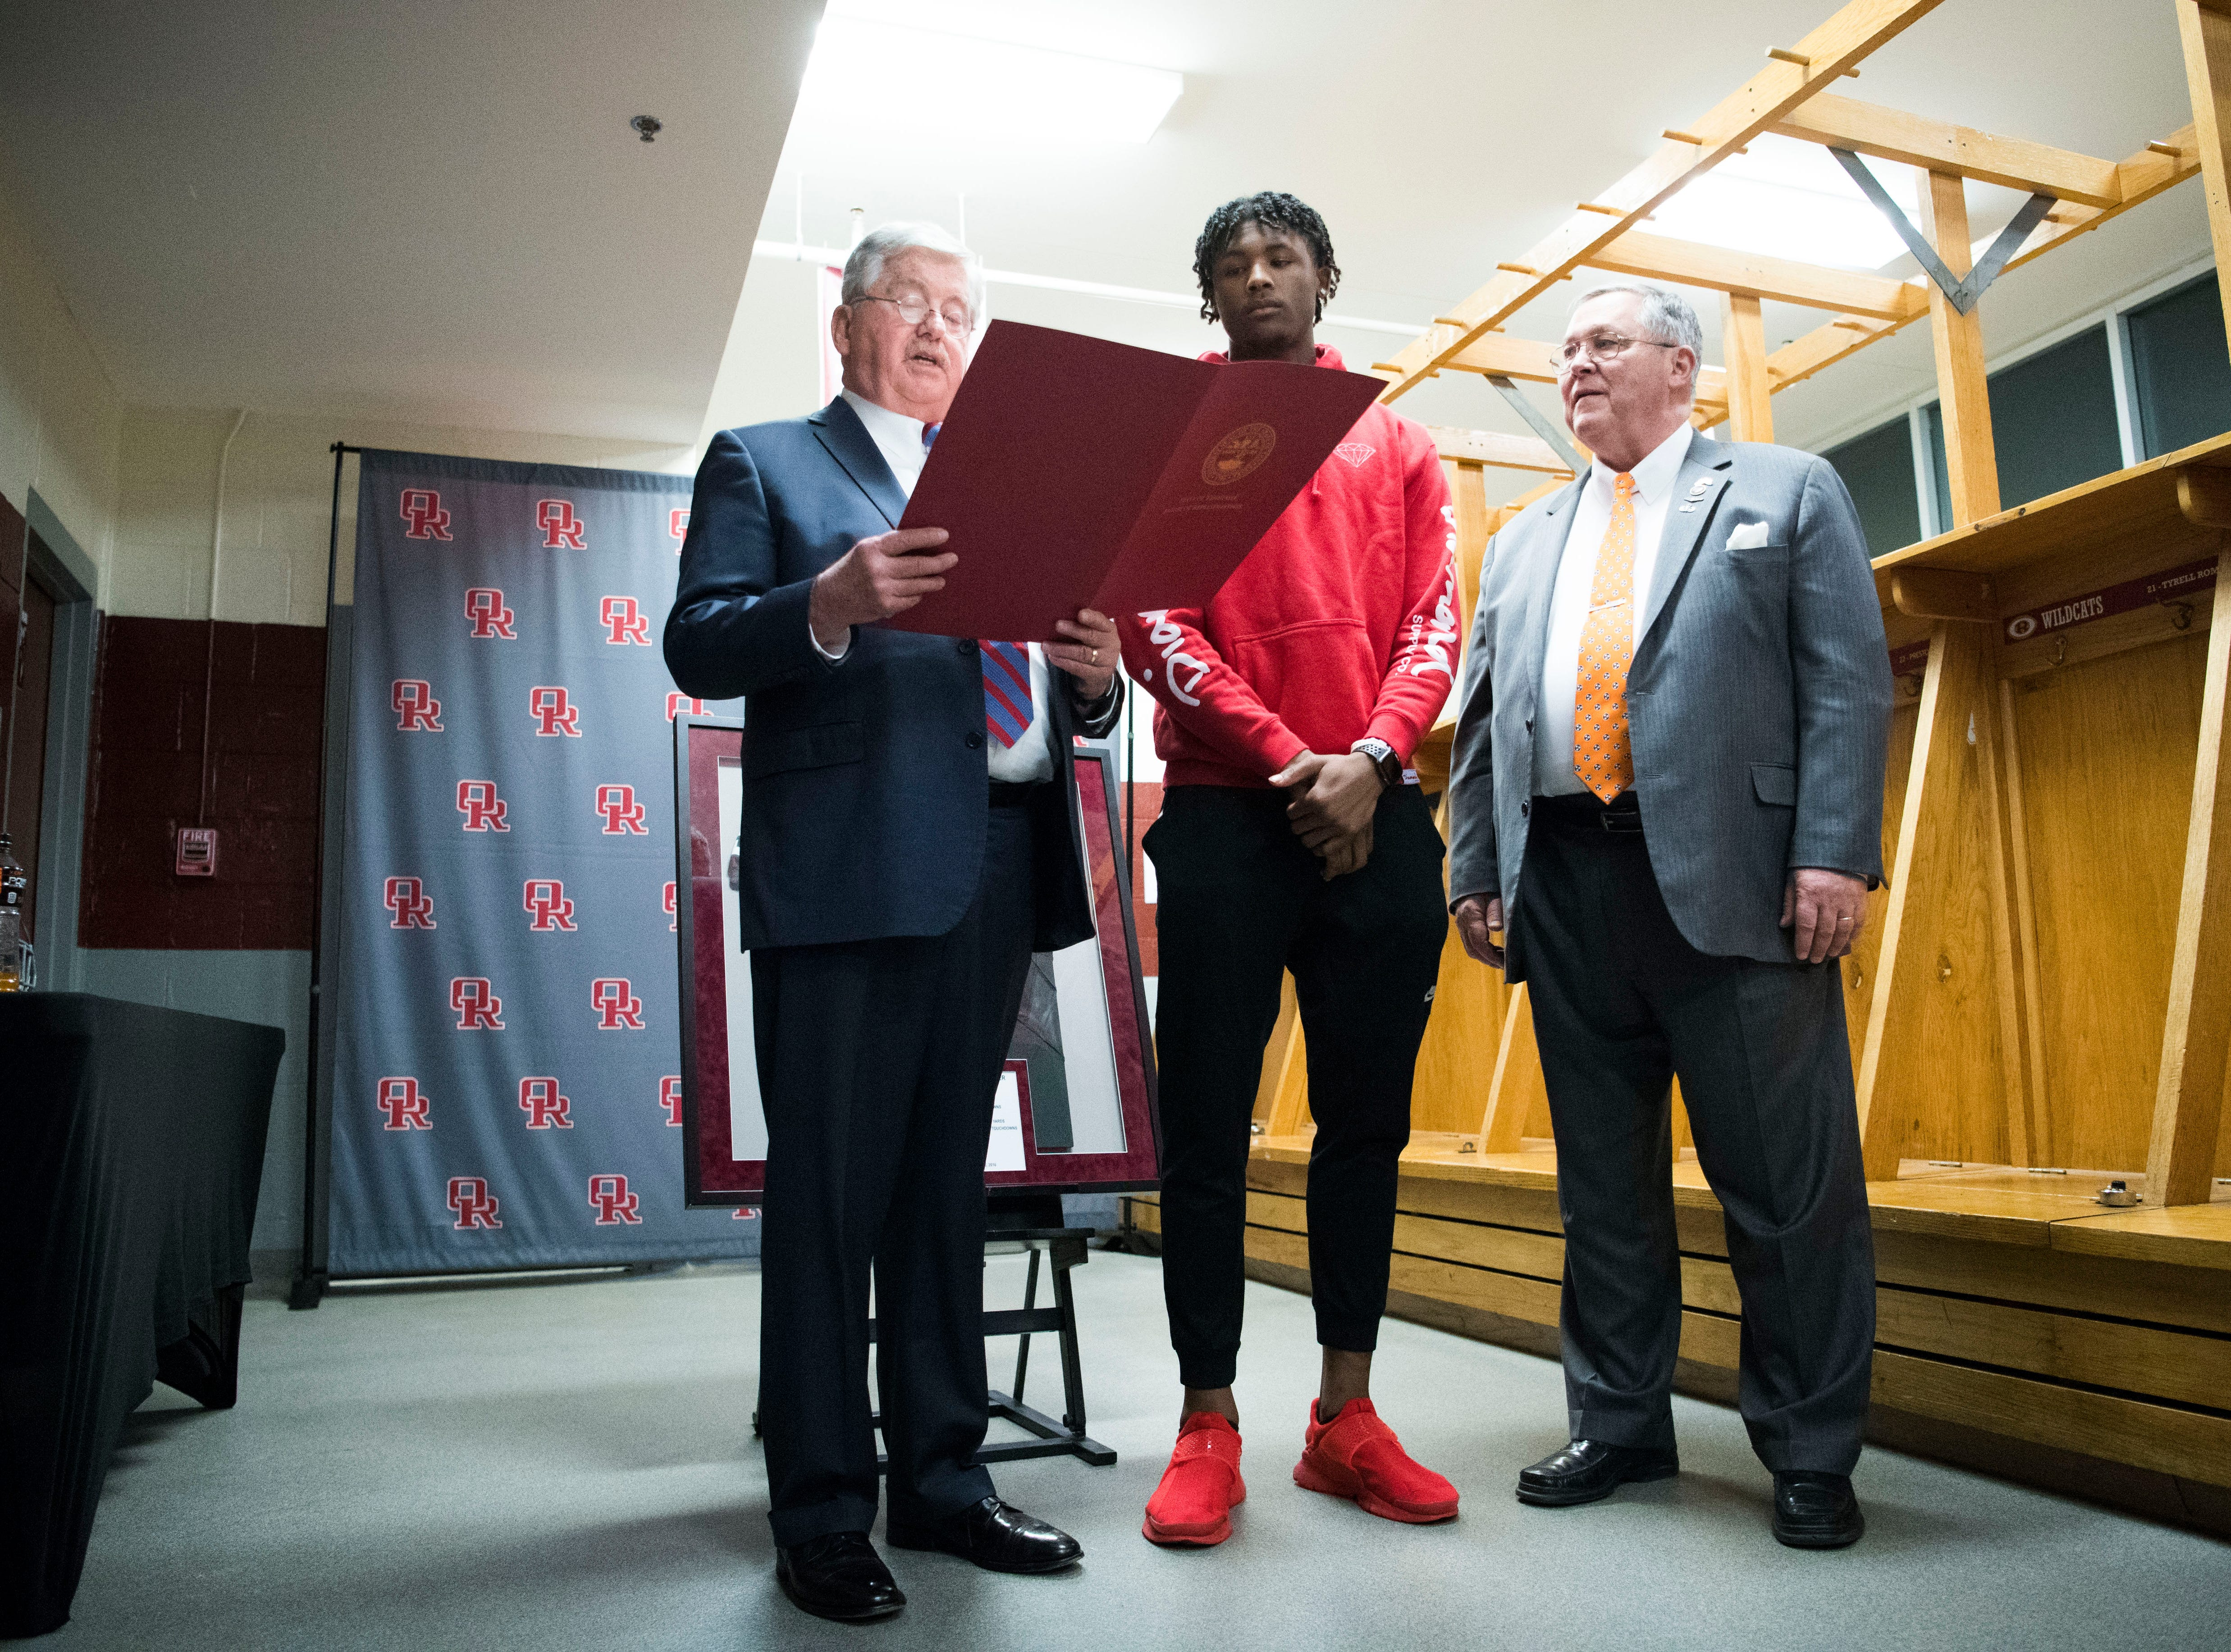 A proclamation is read for former Oak Ridge High School athlete Tee Higgins, now a wide receiver at Clemson University, after his jersey is retired, during a high school basketball game between Oak Ridge and Campbell County at Oak Ridge Friday, Feb. 1, 2019.